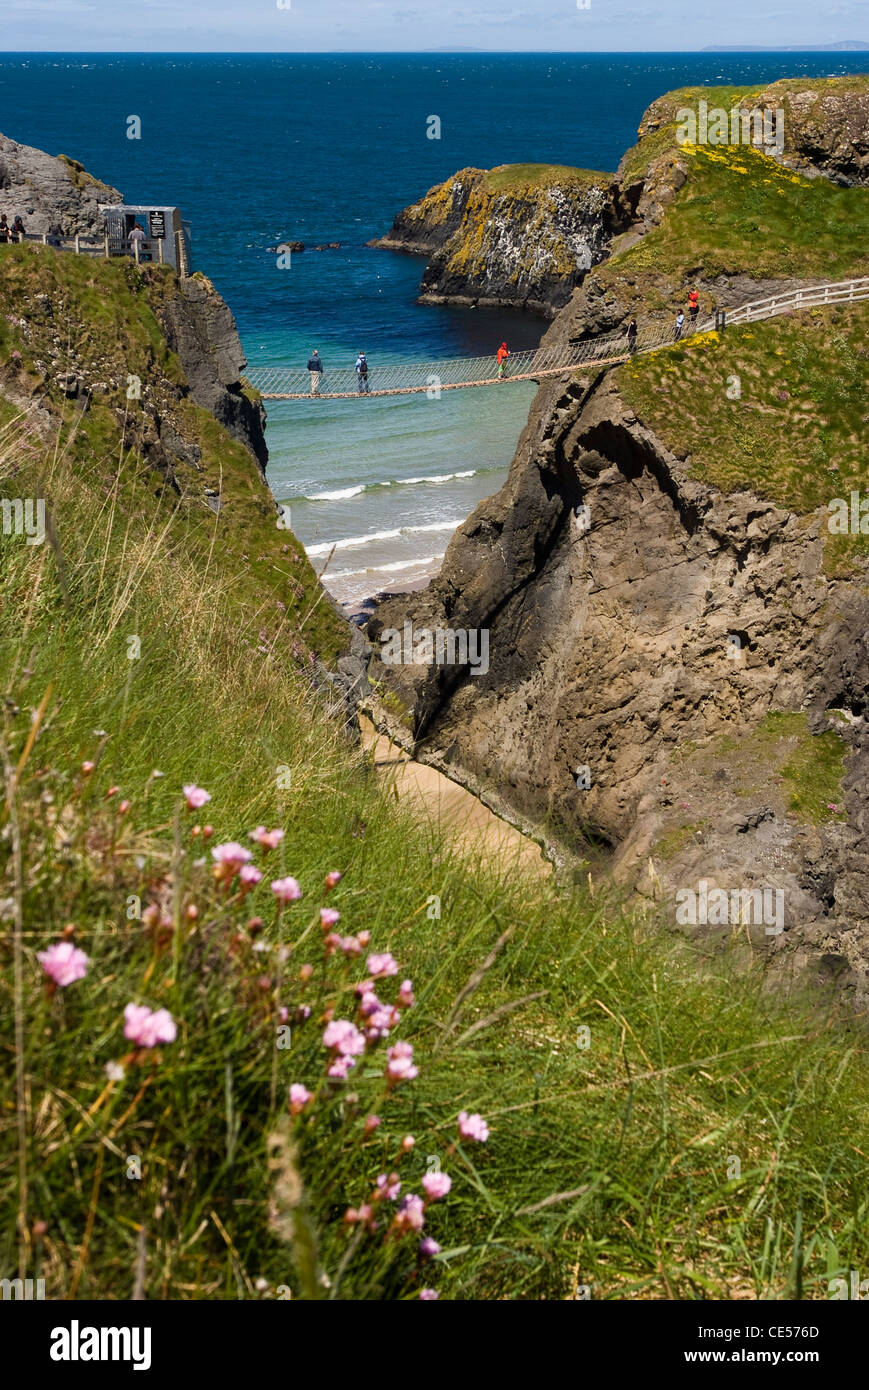 Carrick-a-Rede Rope Bridge, Co. Antrim, Northern Ireland - Stock Image